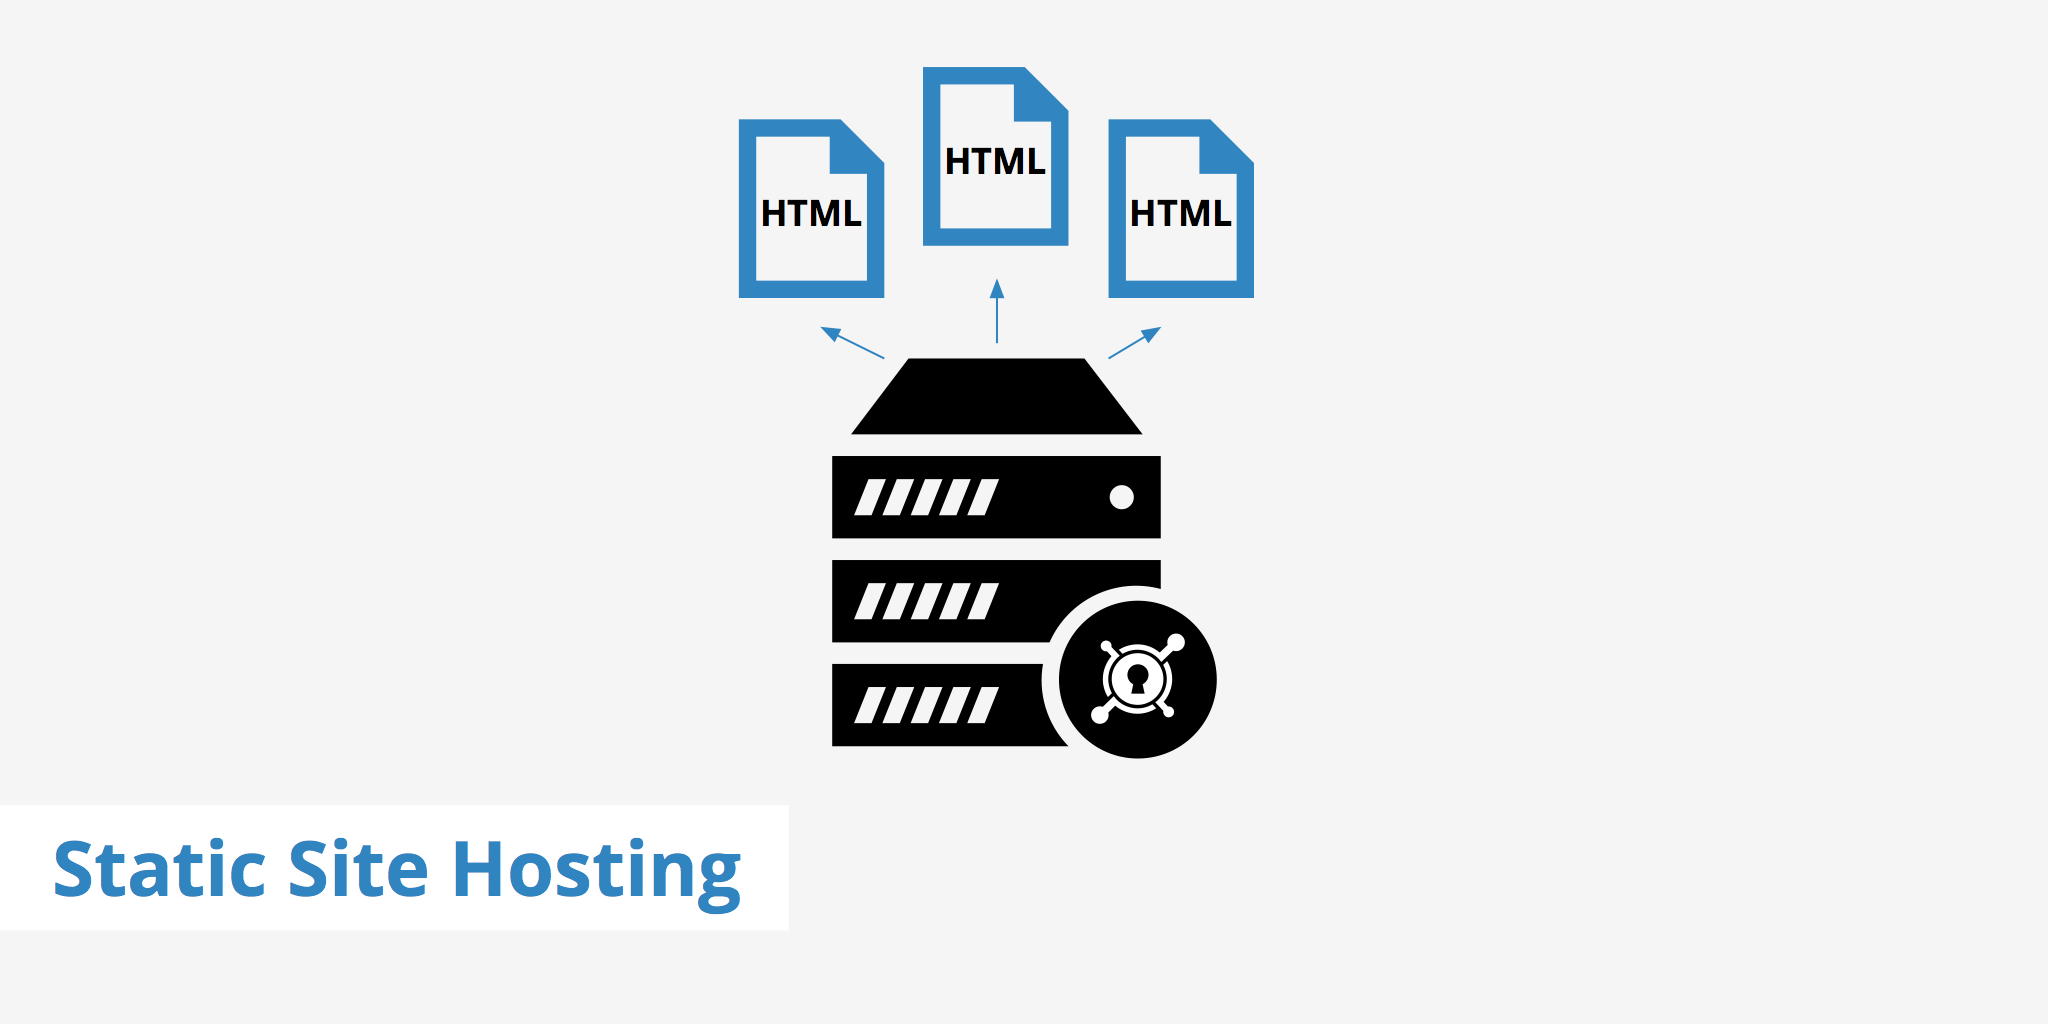 Static Site Hosting With a CDN